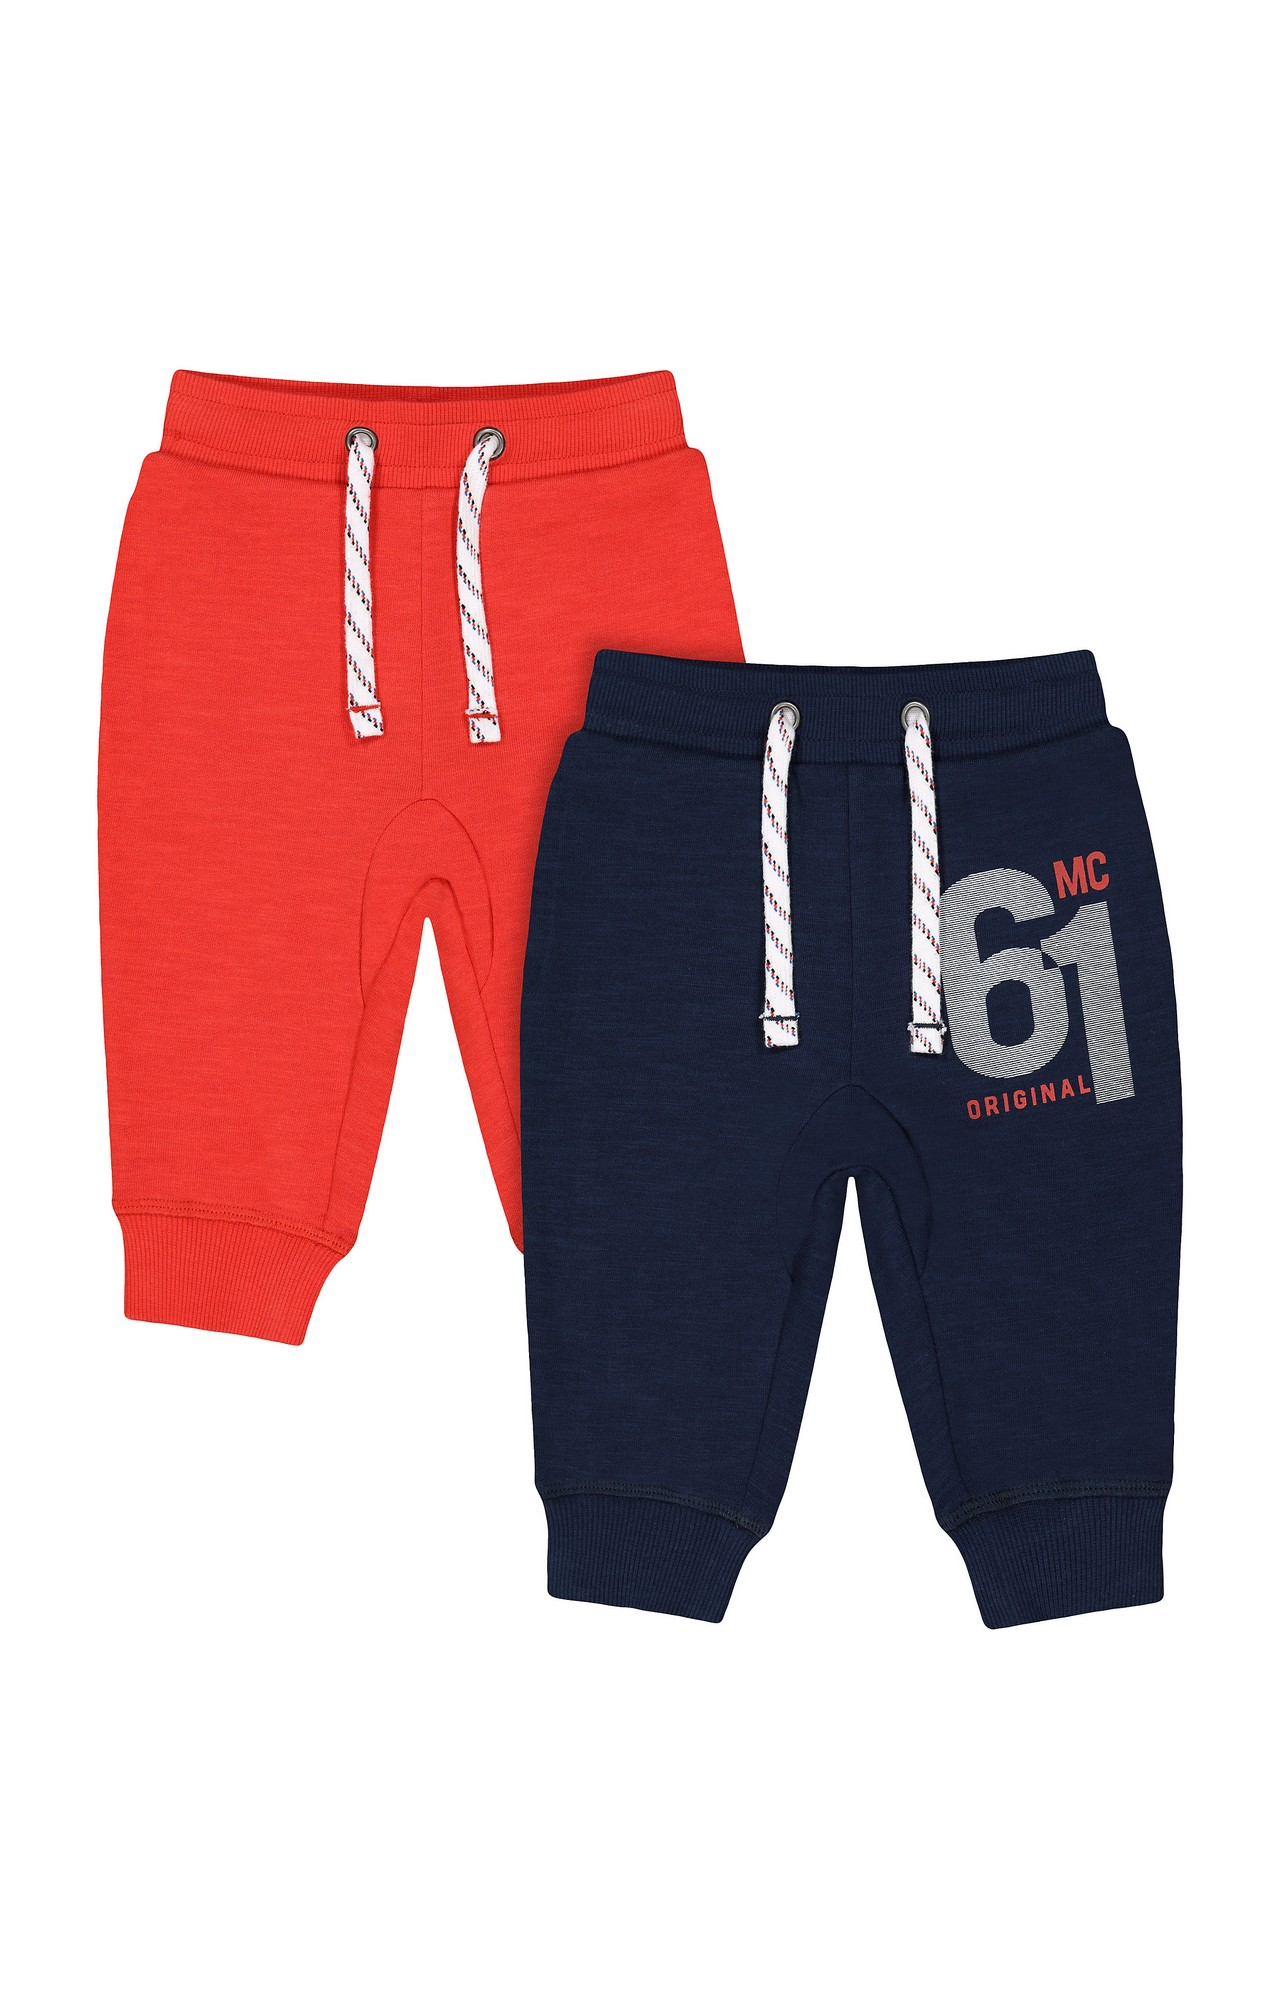 Mothercare | Multicoloured Printed Joggers - Pack of 2